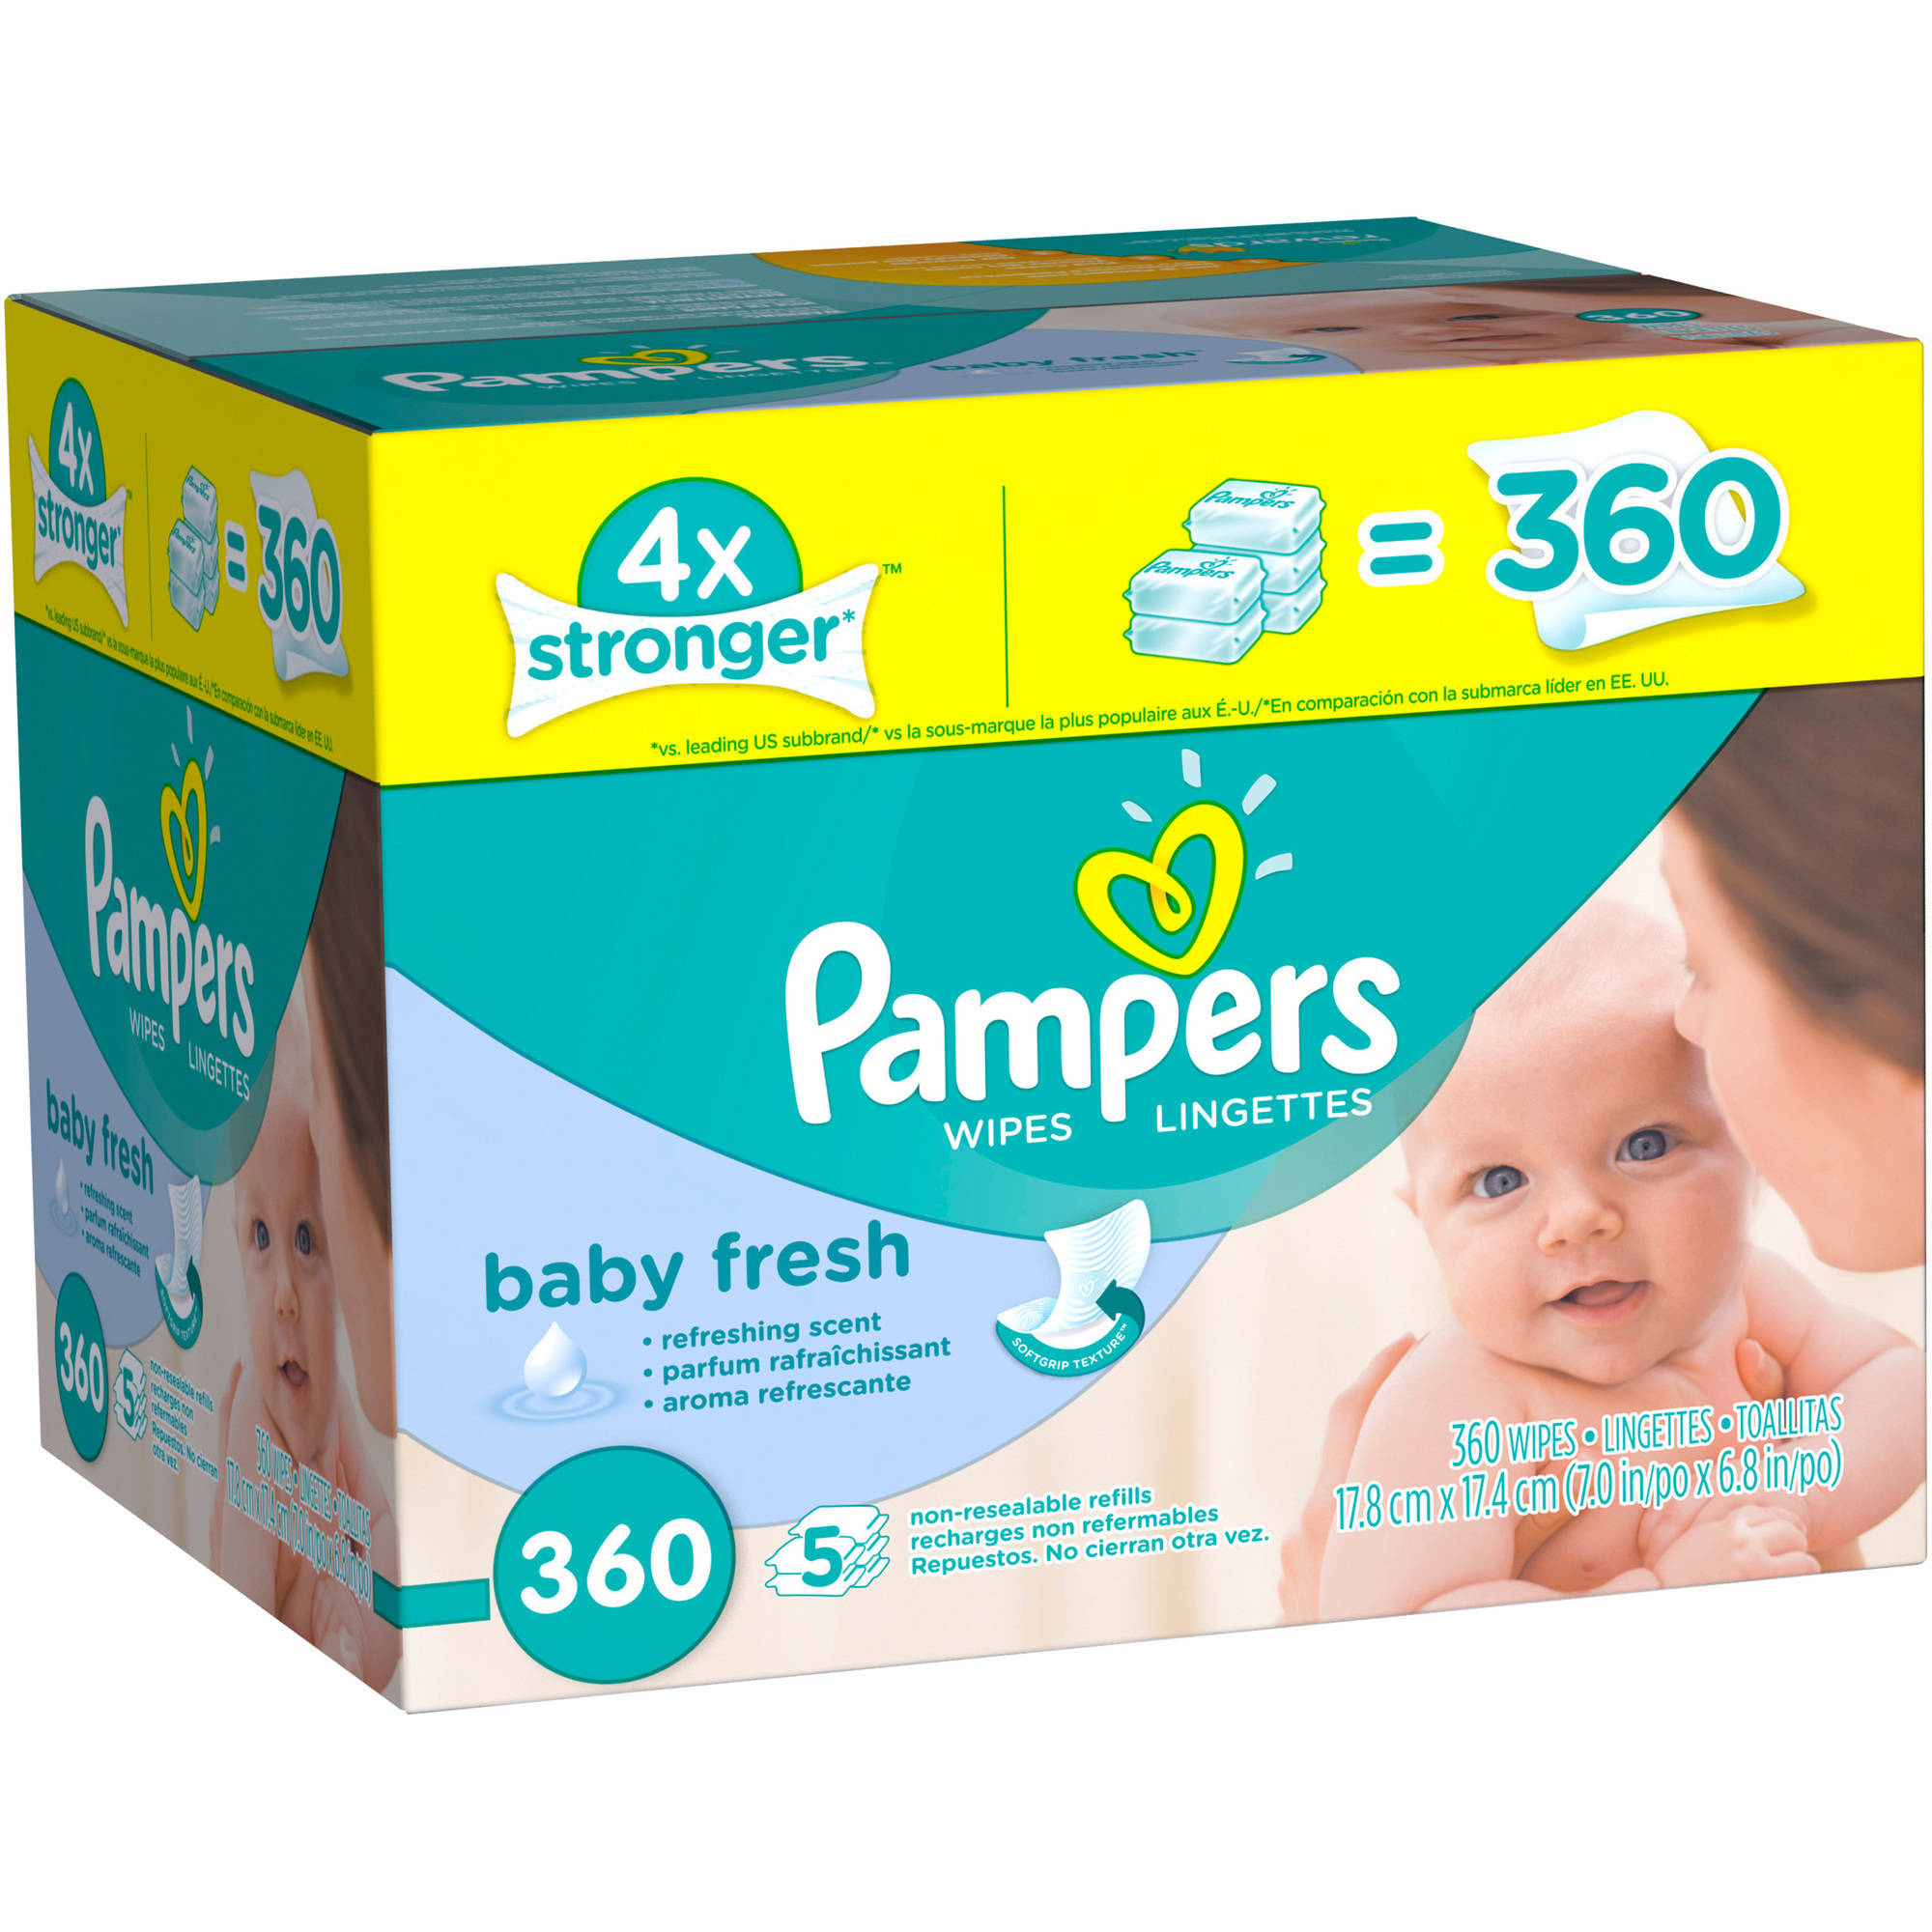 Pampers Baby Fresh Baby Wipes, 360 sheets